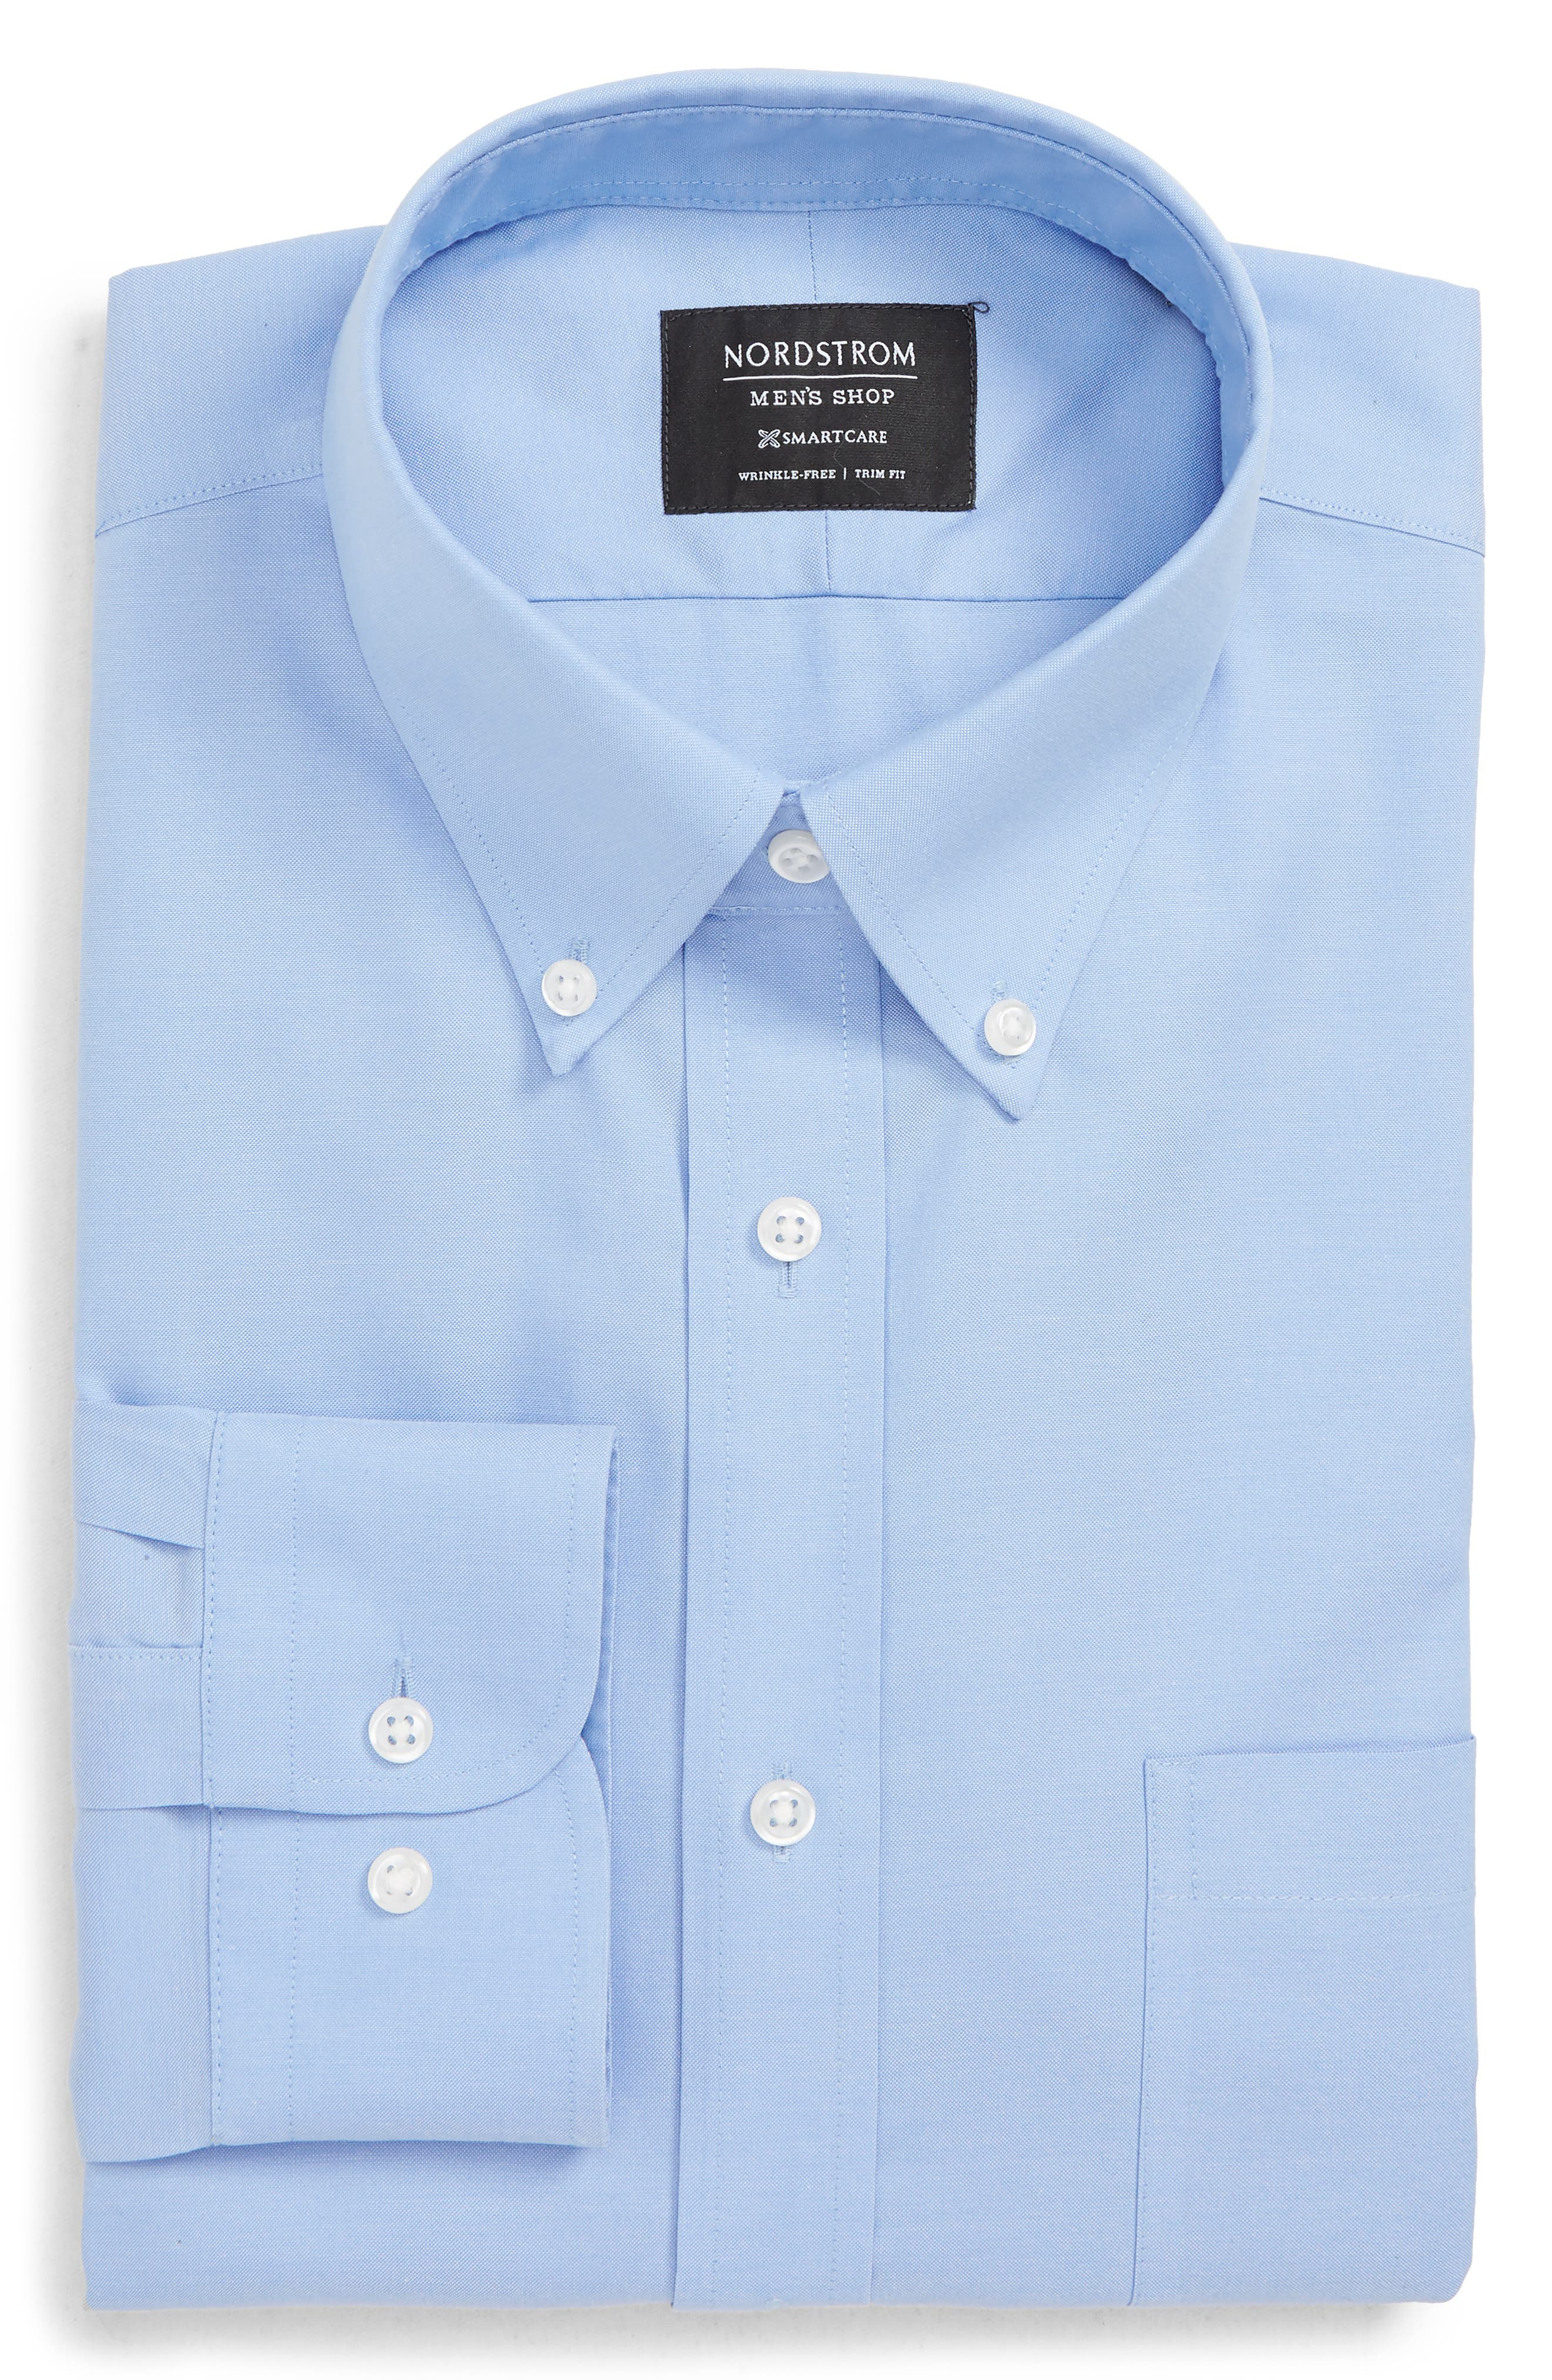 Nordstrom Shop Smartcare(TM) Trim Fit Dress Shirt - Blue